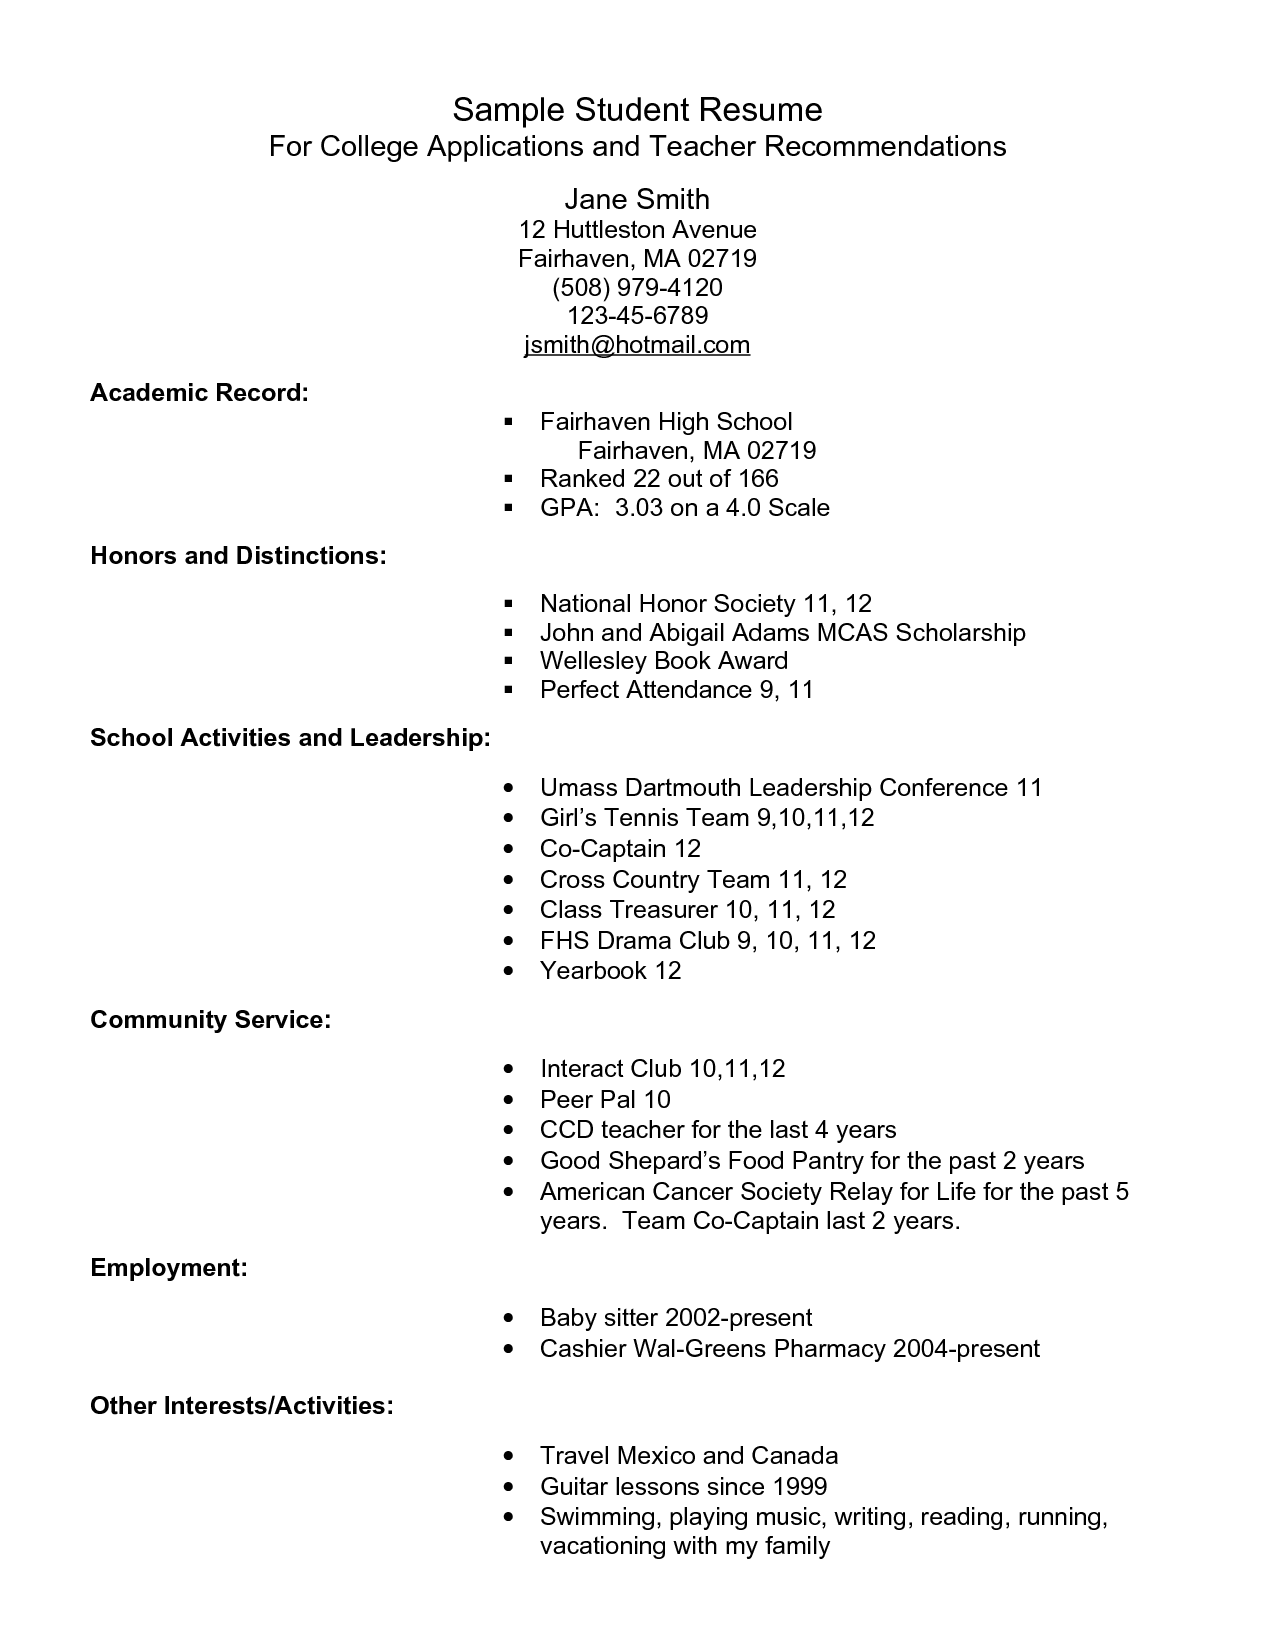 example resume for high school students for college applications sample student resume pdf by smapdi59. Resume Example. Resume CV Cover Letter